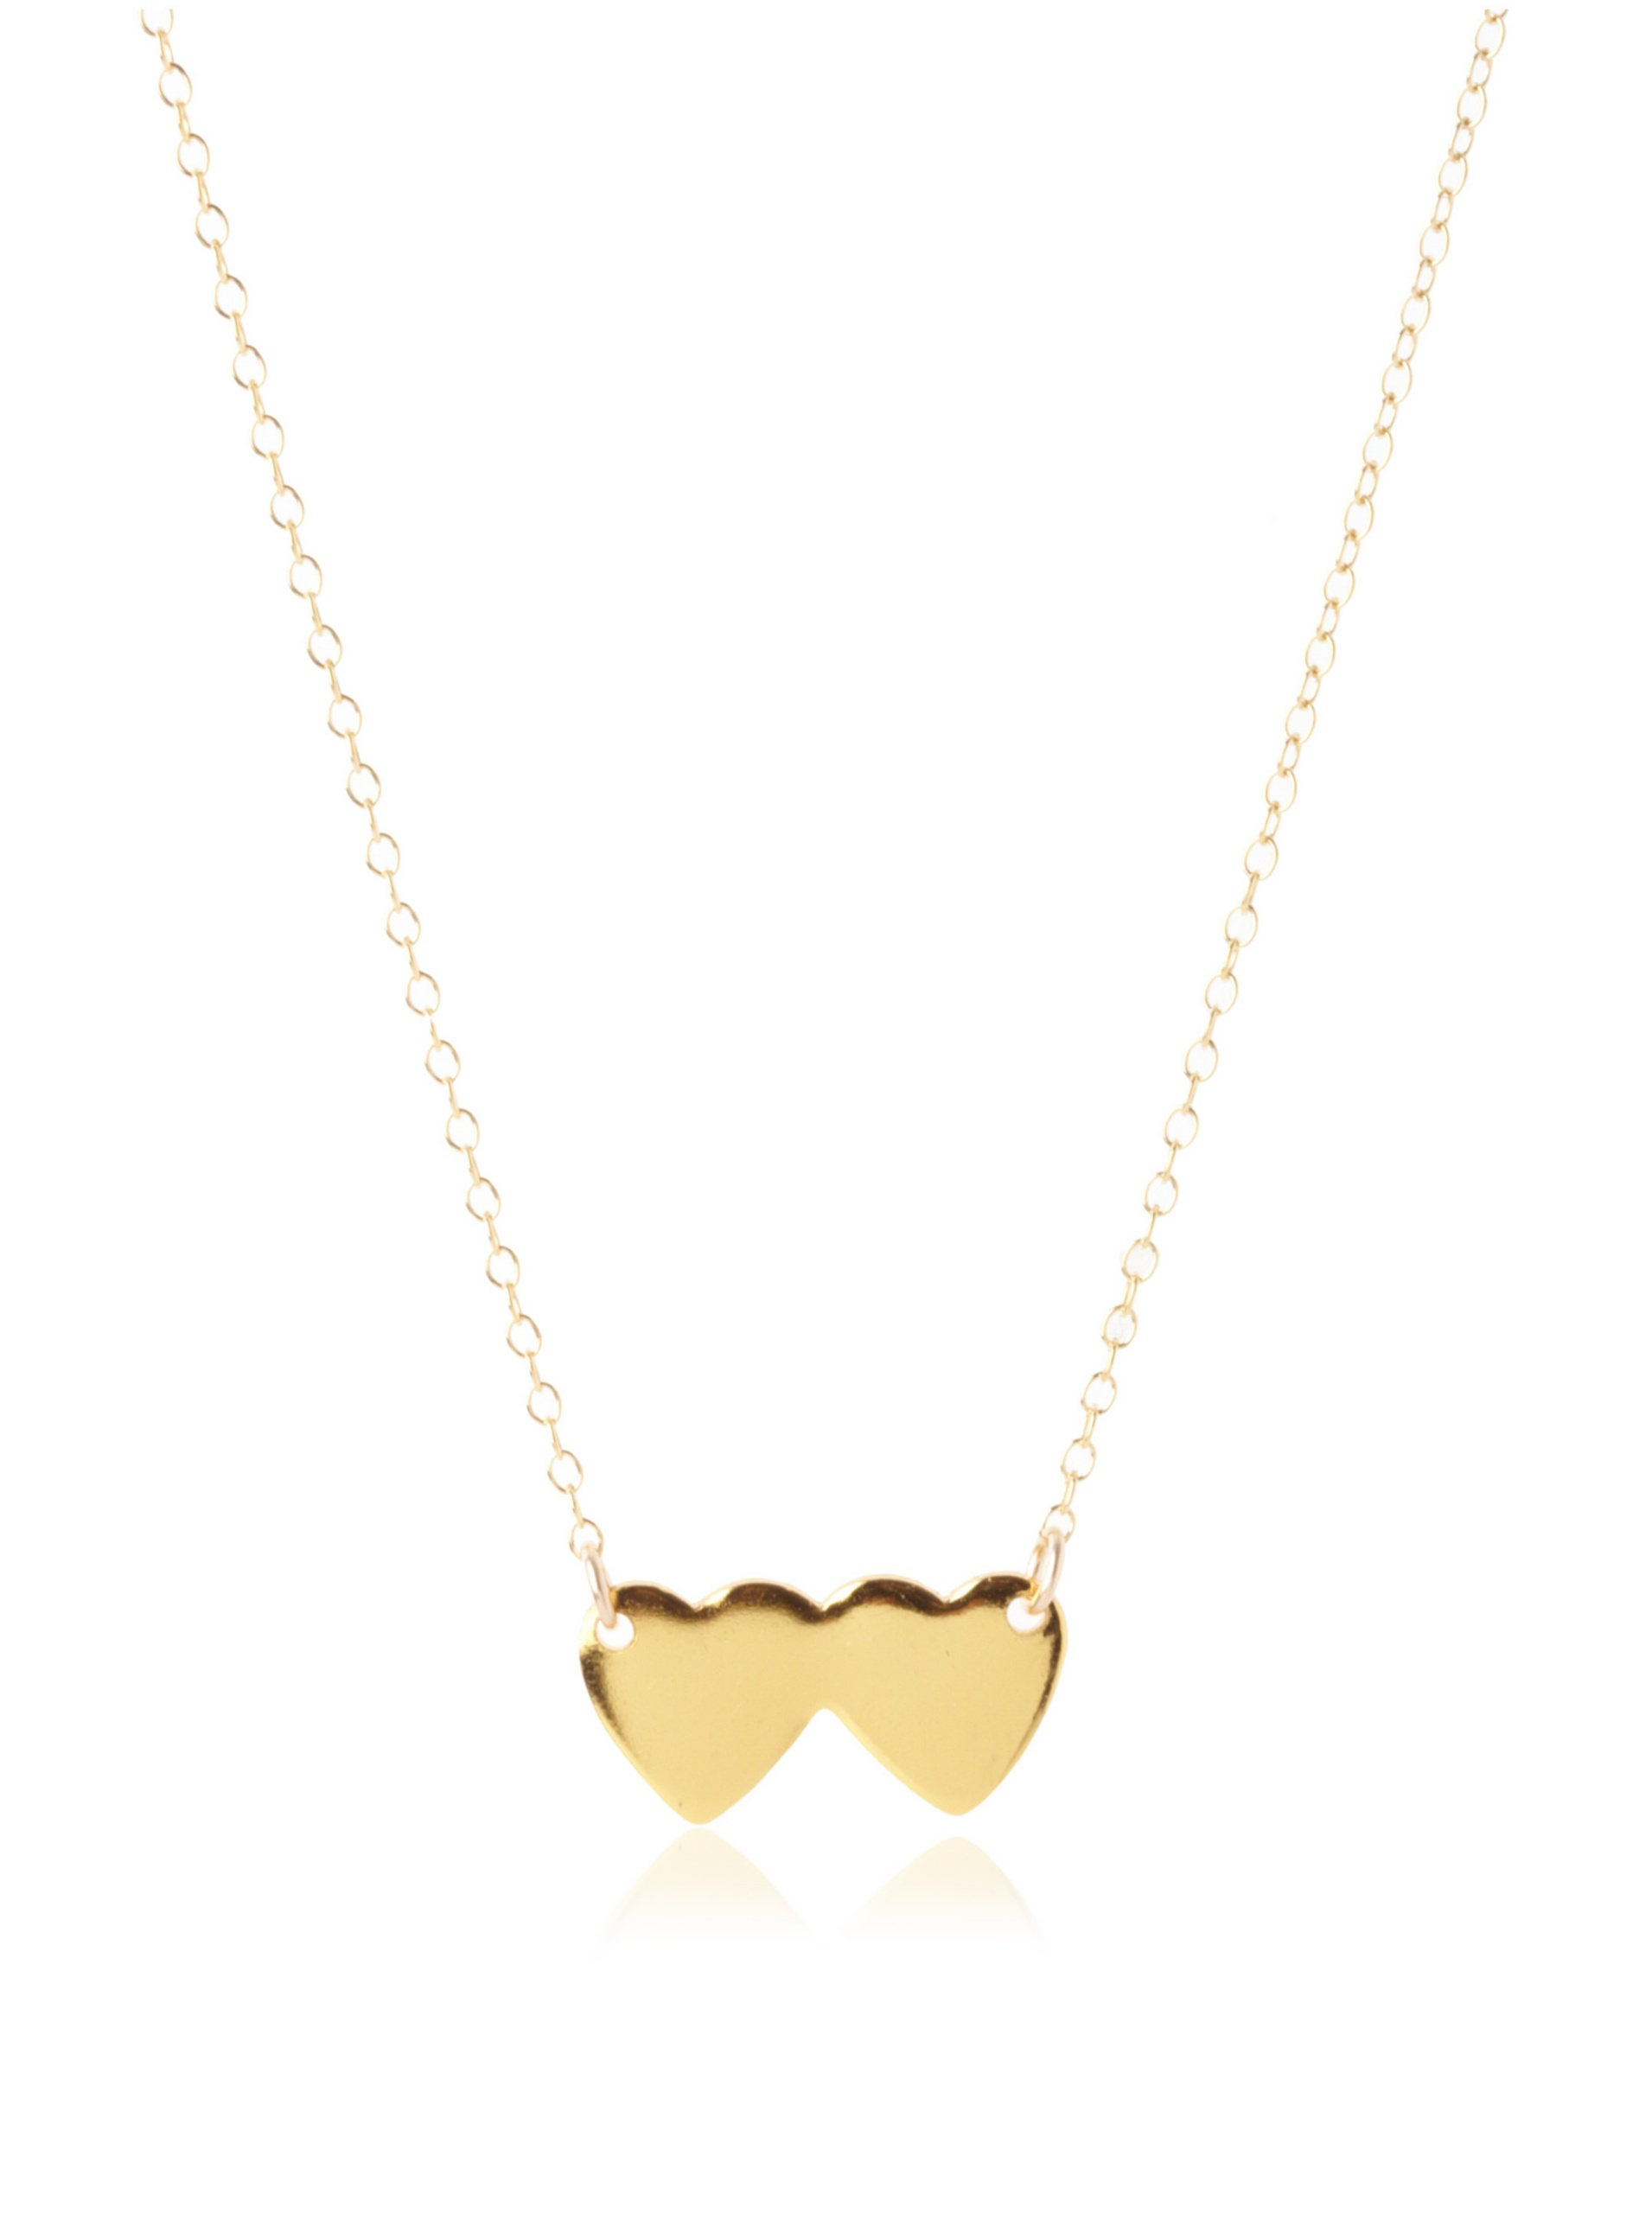 gorjana Two Hearts Necklace, Gold